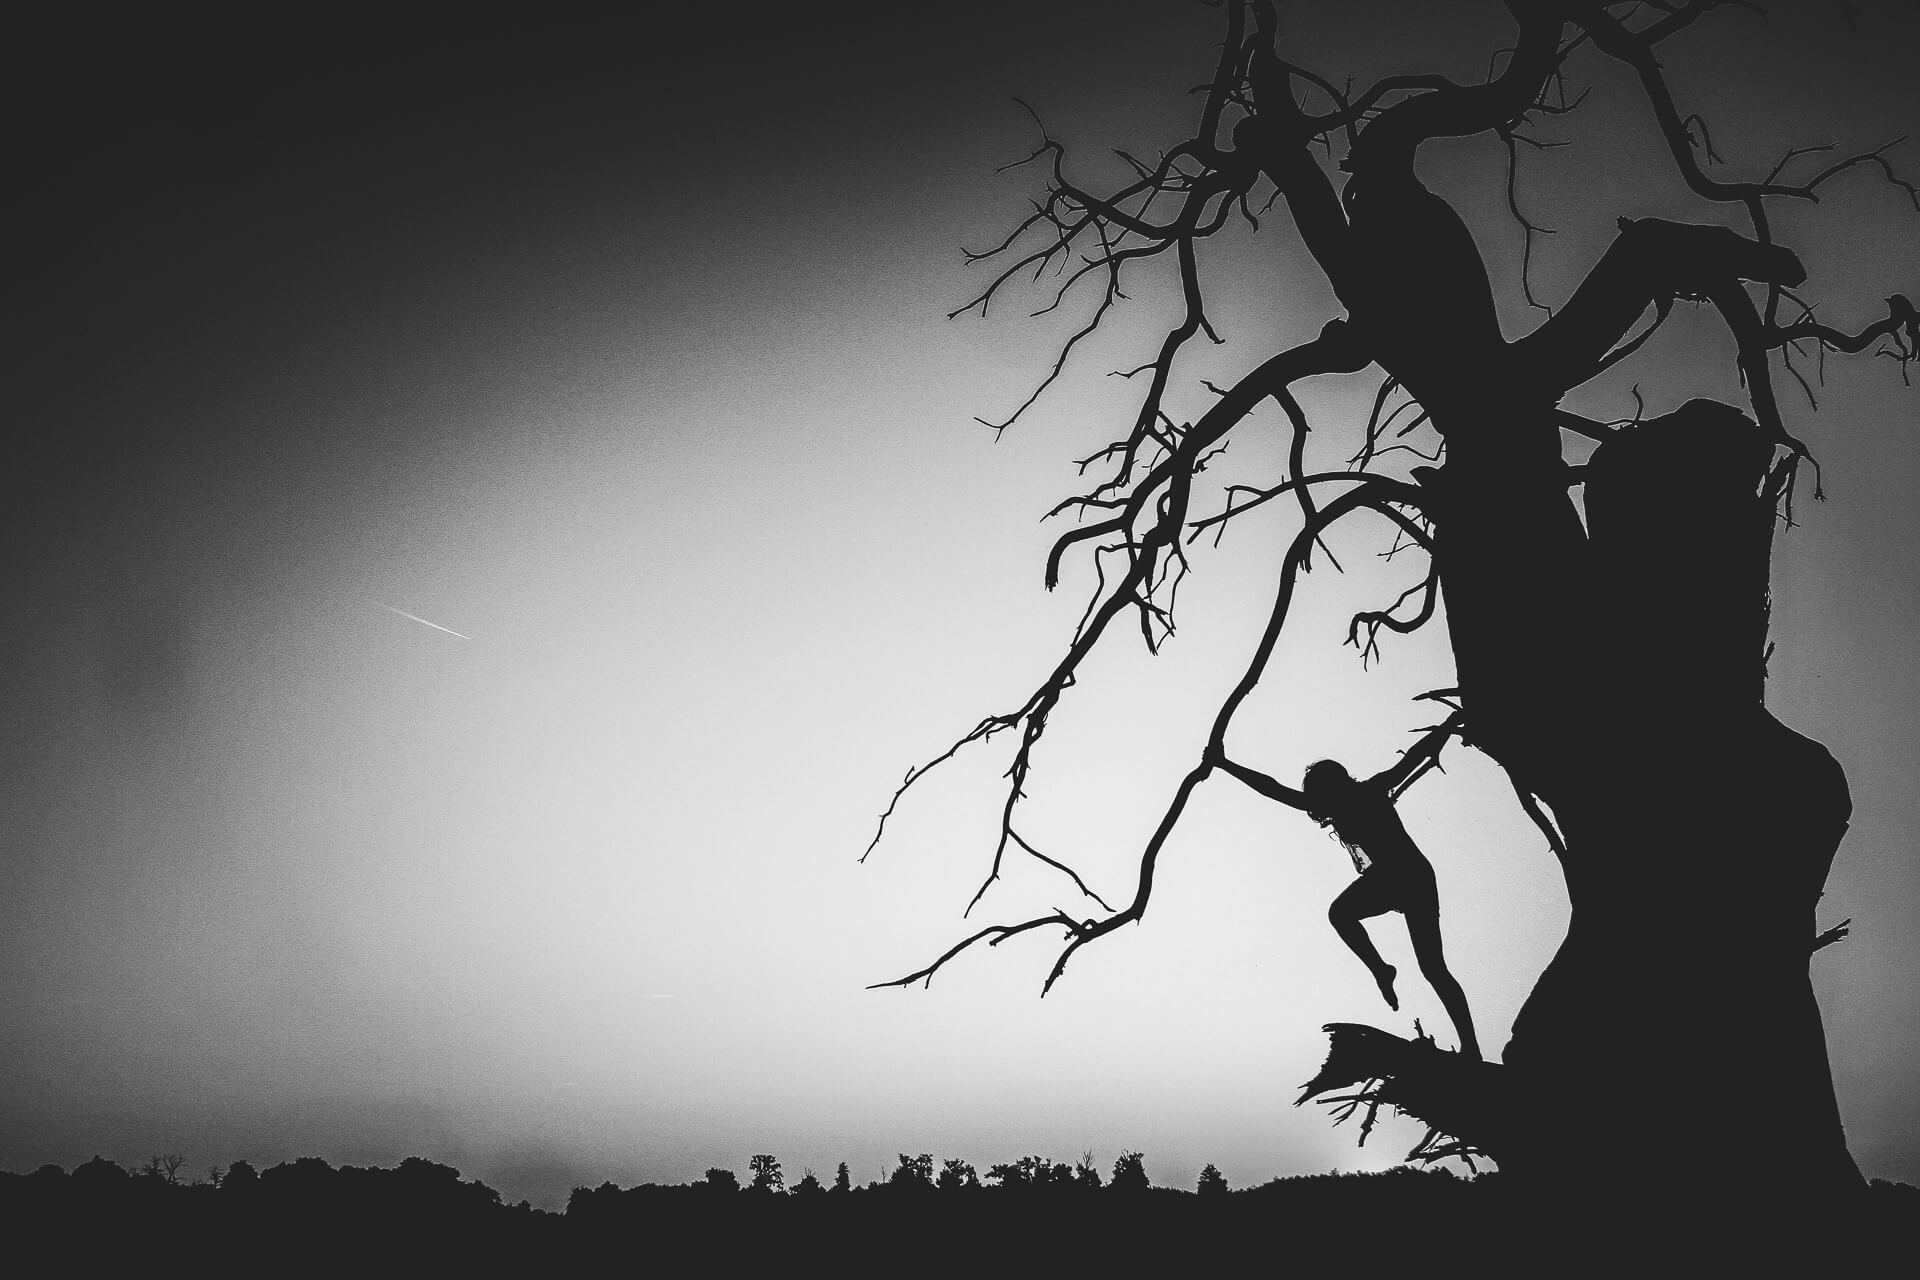 A black and white image taken at sun rise showing Liz (who is completely in silhouette, as is the large tree she is in) stood on the snapped off branch of a long dead tree, dawn has broken and the sun is just about to rise behind her. Liz, both arms outstretched holds on to a small branch with her right hand whilst she stands on a broken branch (of significant size), her left hand is holding the main tree trunk. She leans away from the tree, her body in a perfect straight line, head to foot. Her right leg is lifted and her knee is bent at 90 degrees.